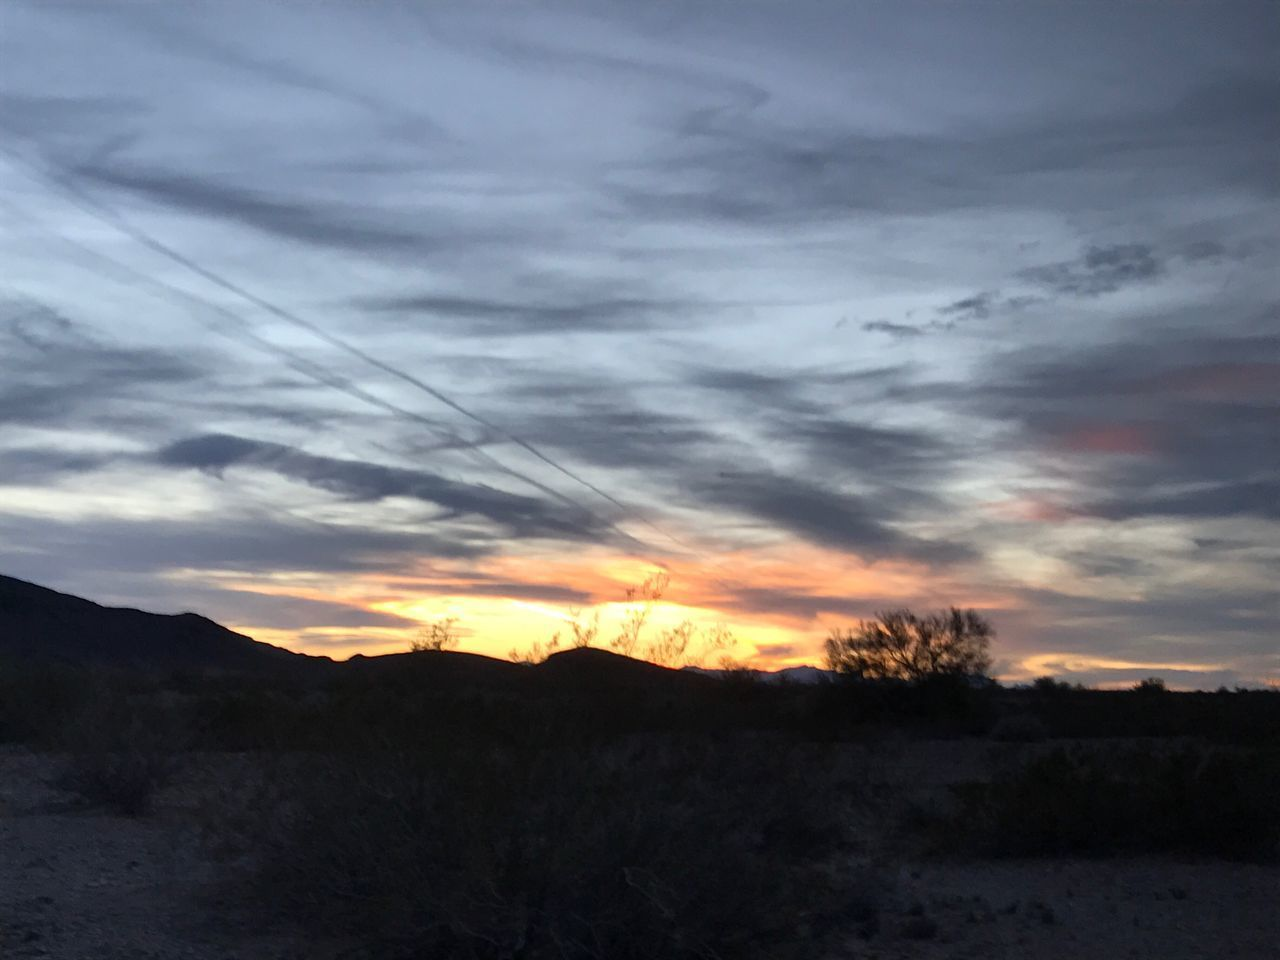 Sunset Nature Tranquility Beauty In Nature Sky Scenics Silhouette Tranquil Scene Cloud - Sky Landscape No People Outdoors Tree Mountain Day No Edit/no Filter Silhouette Arid Climate Desert Beauty